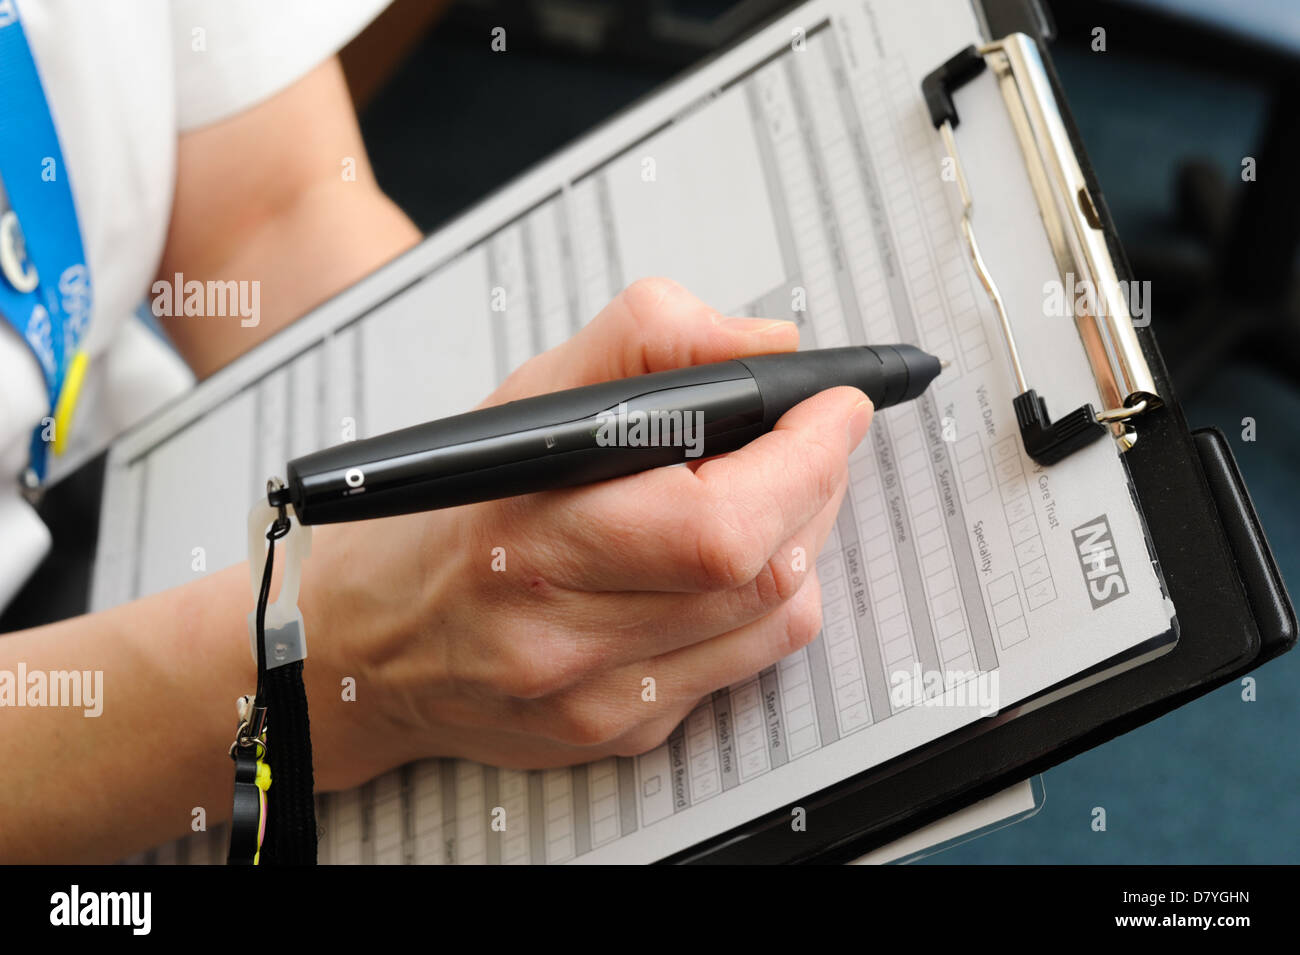 Nurse filling in an NHS form with a digital pen - Stock Image